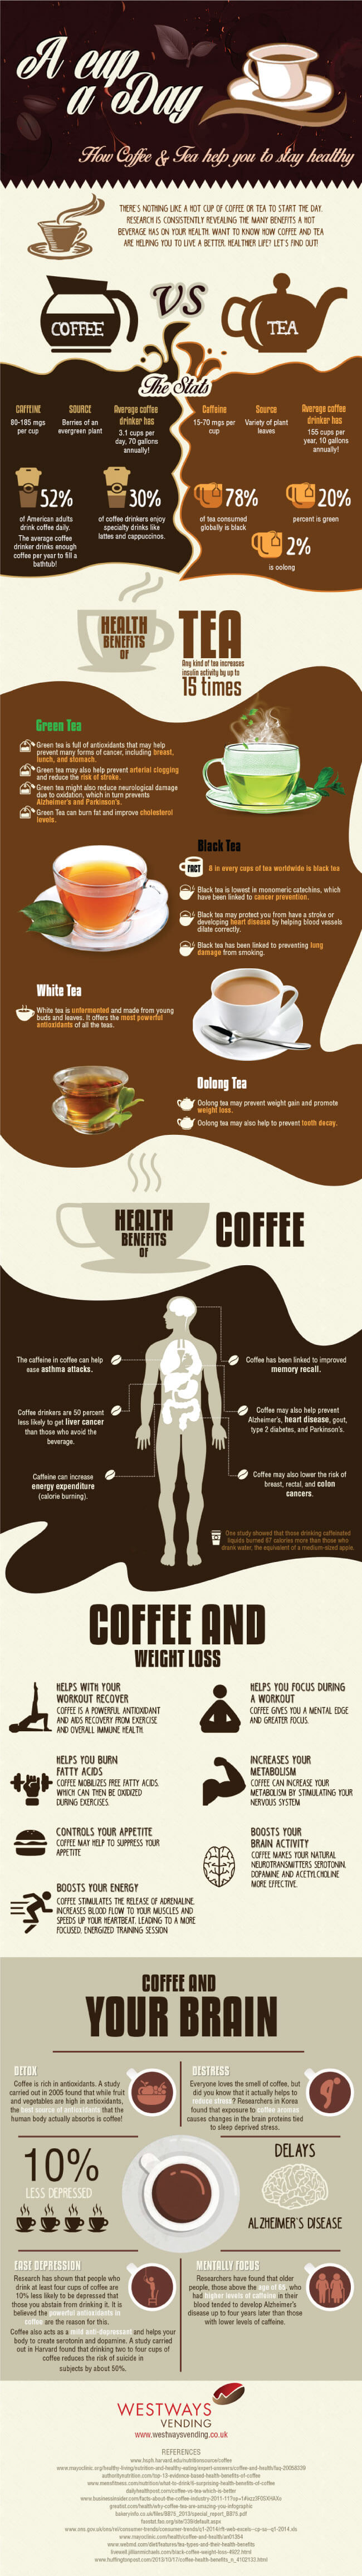 Image titled 'Tips to Be Healthier with Coffee and Tea'